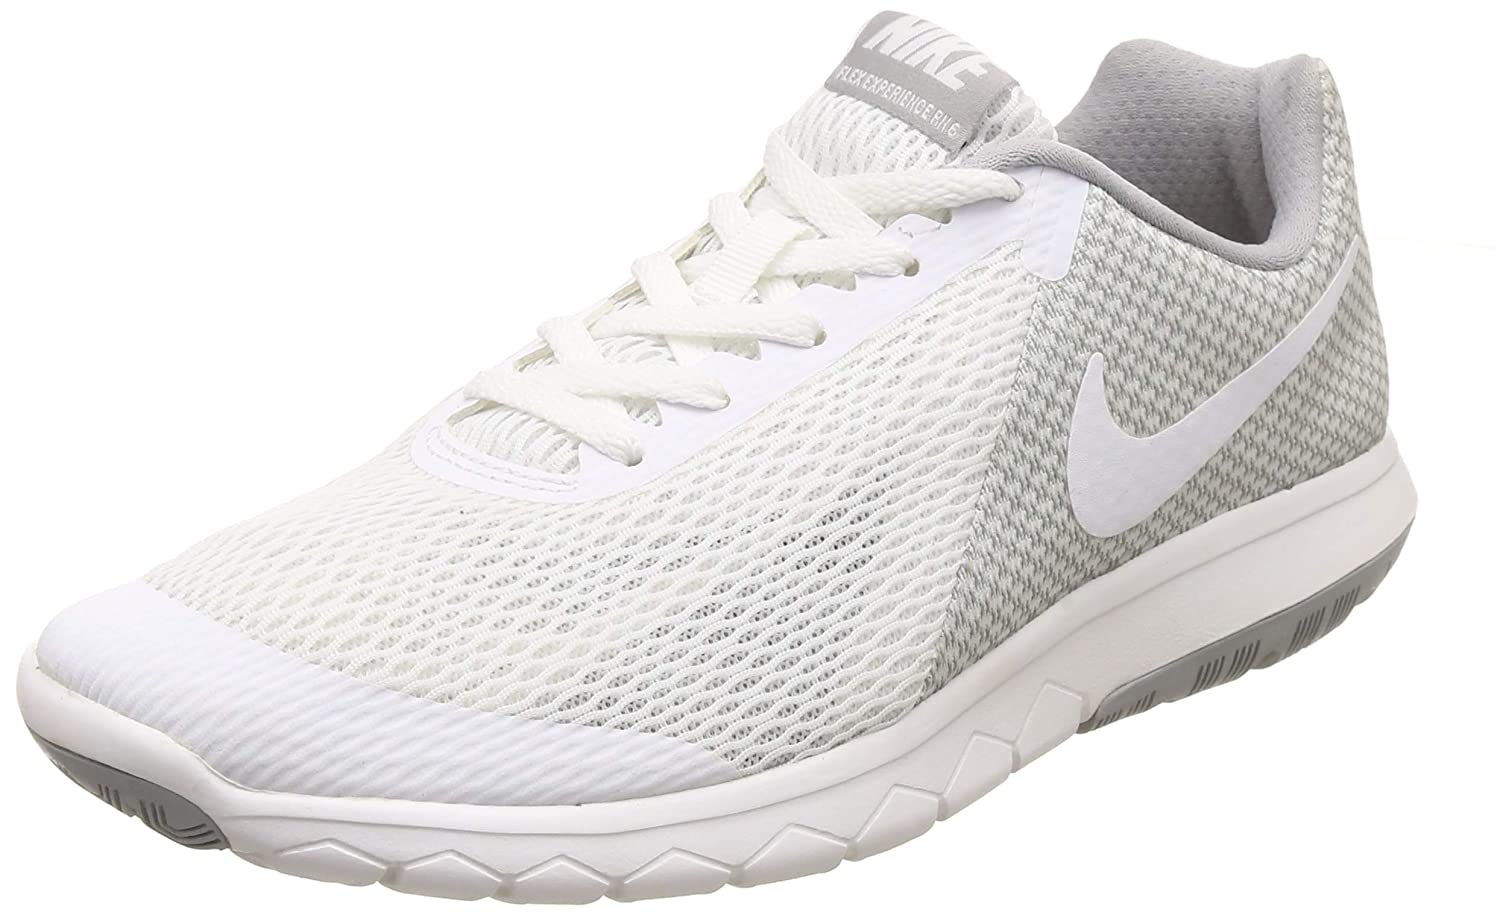 Nike Womens Flex Experience 6 Low Top Lace Up Running Sneaker, White, Size 9.5